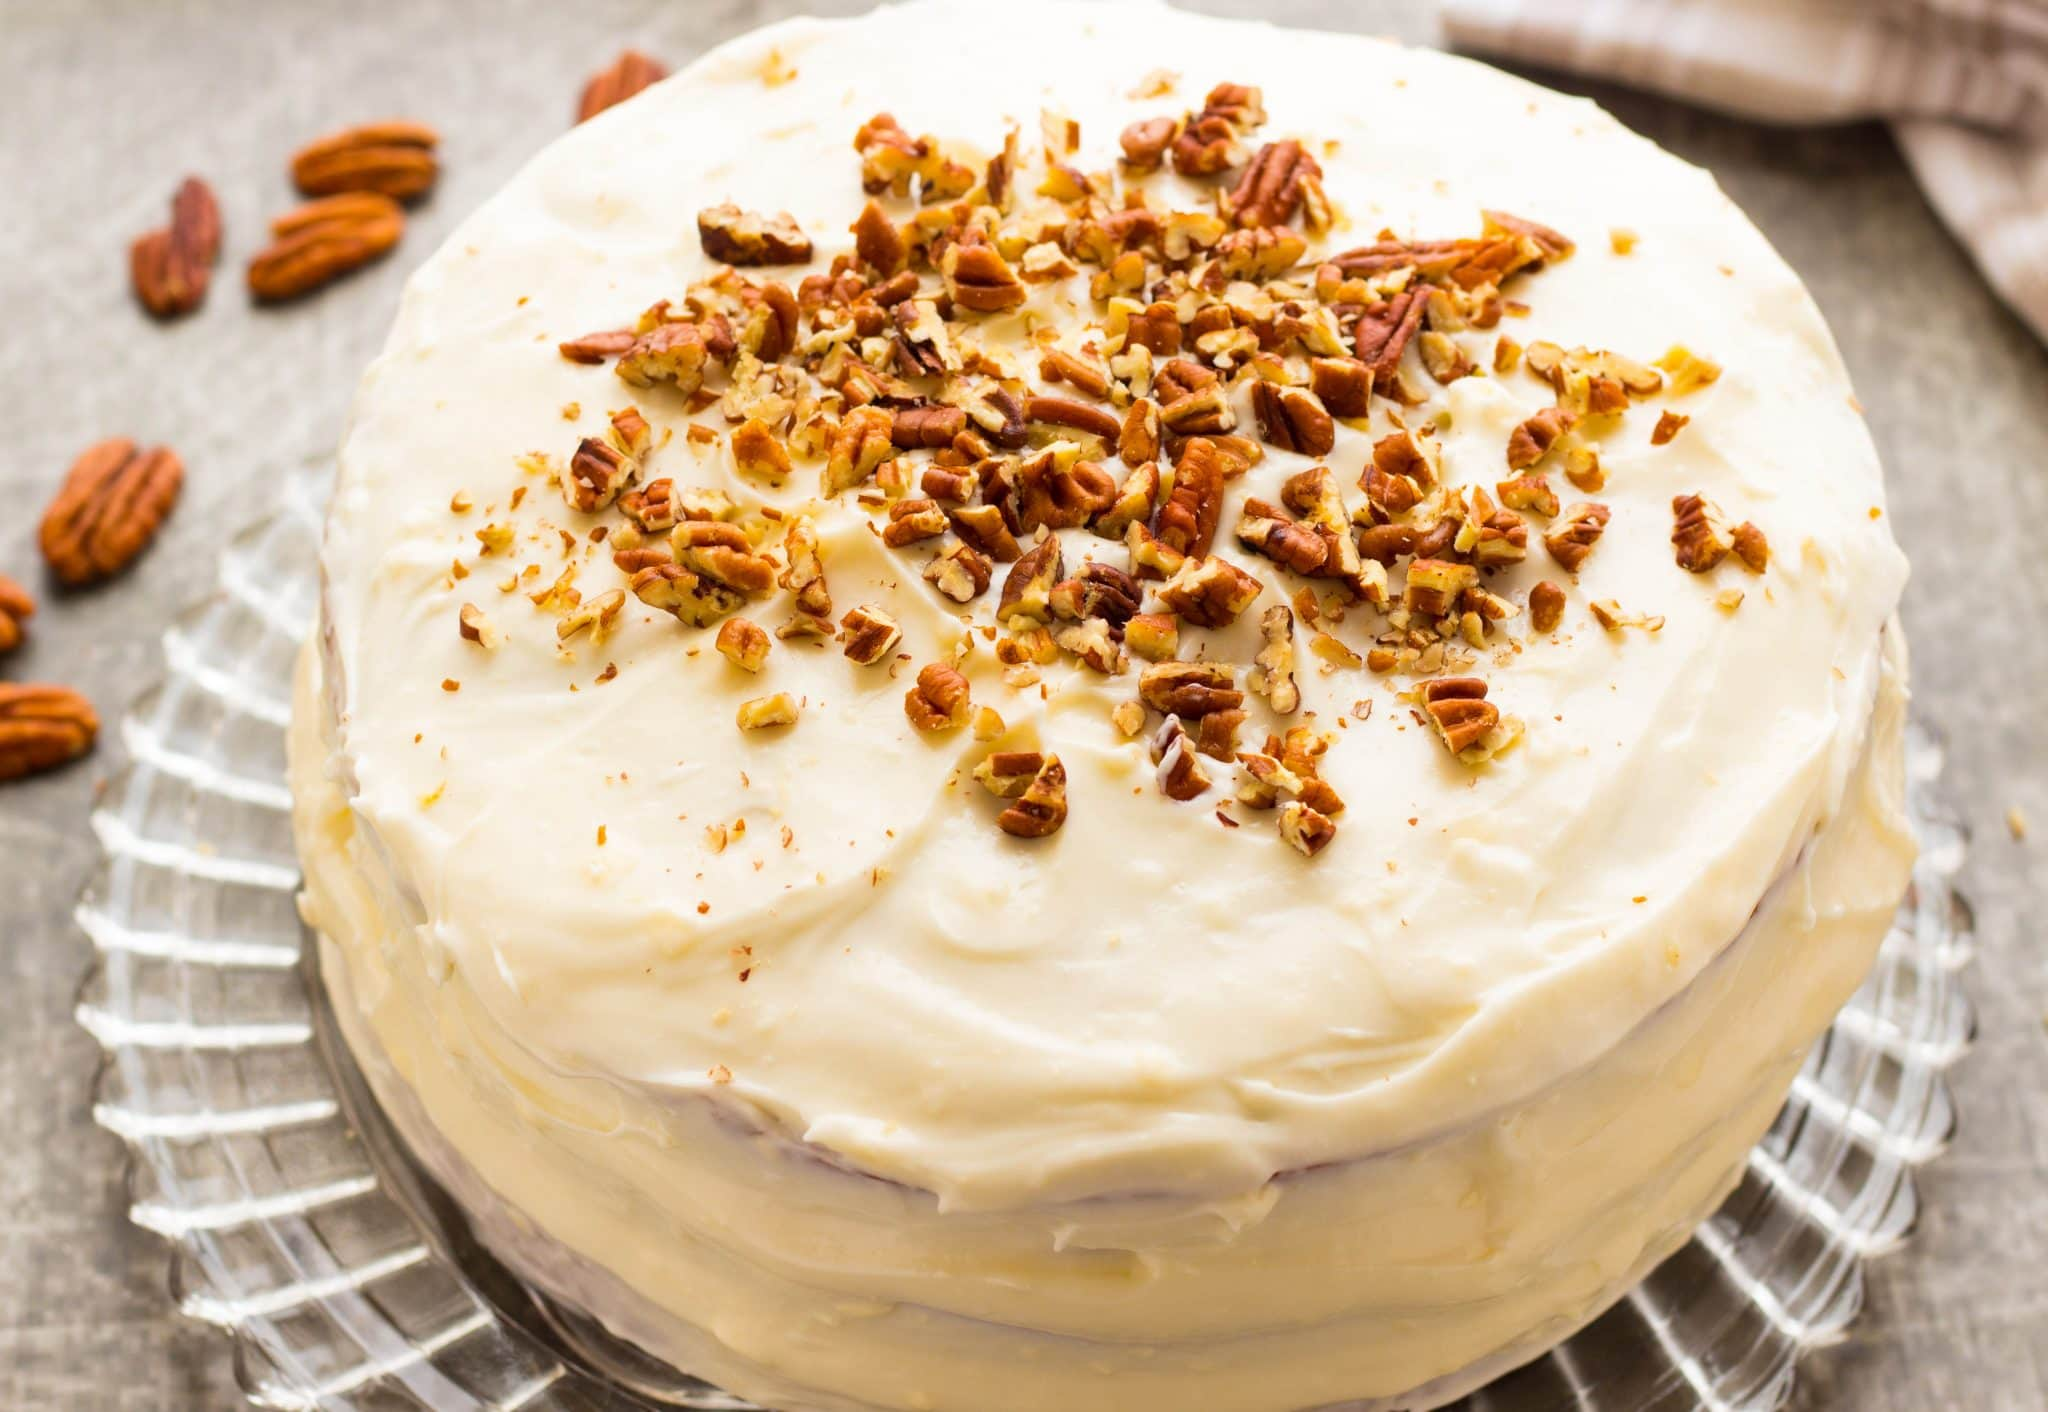 A southern favorite...Southern Hummingbird Cake is dense, moist, rich banana cake with crushed pineapple, roasted pecans & a buttery cream cheese frosting!